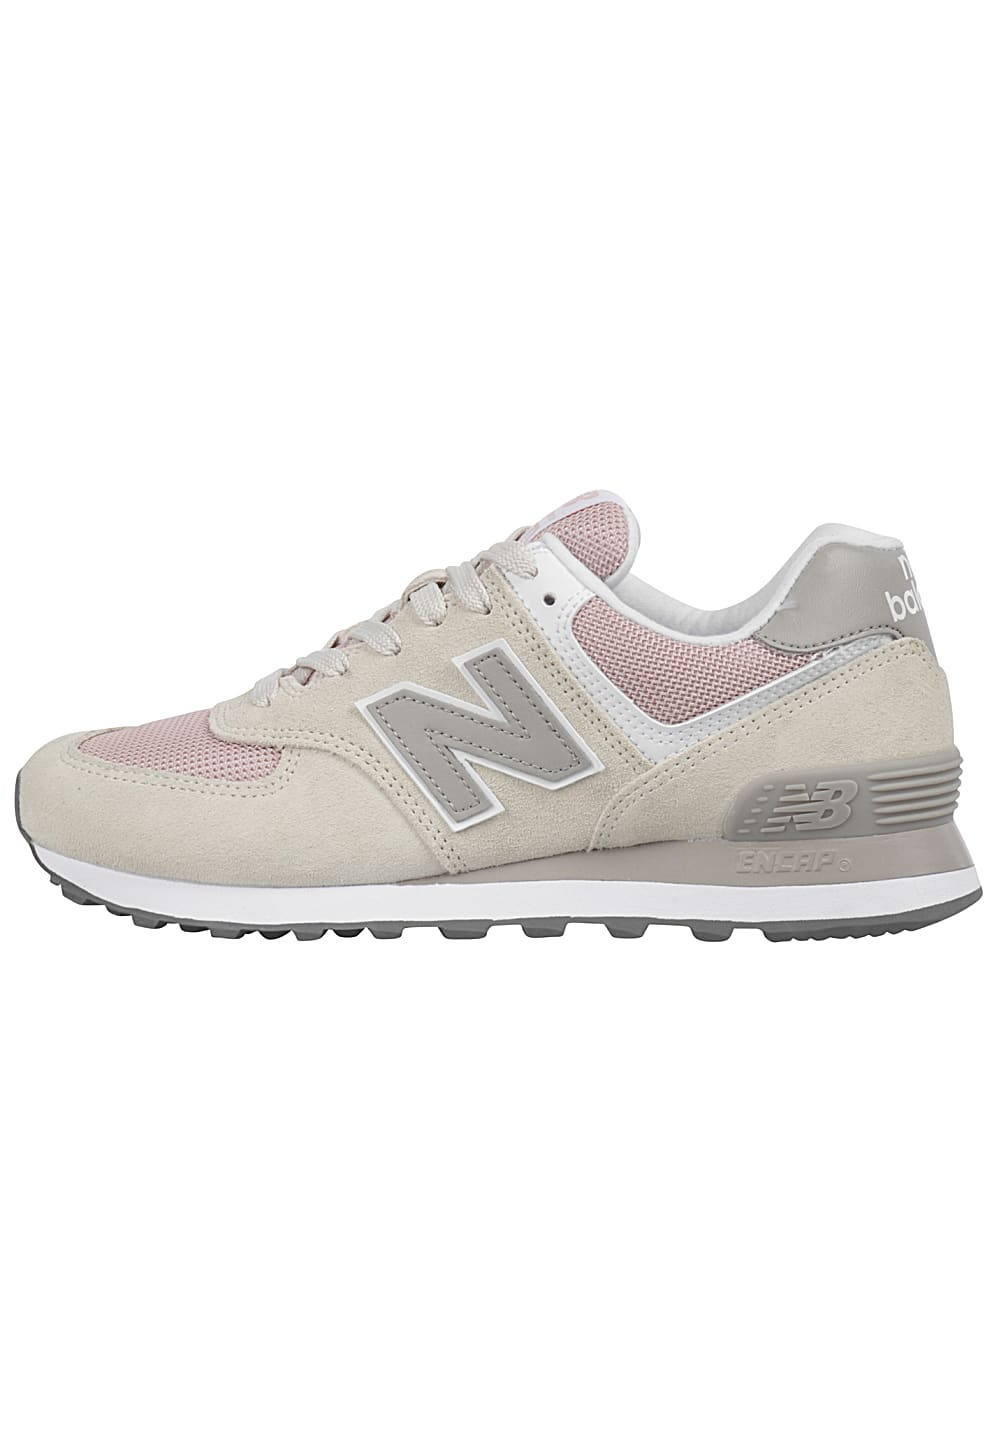 NEW BALANCE WL574 - Sneaker für Damen - Beige - Planet Sports